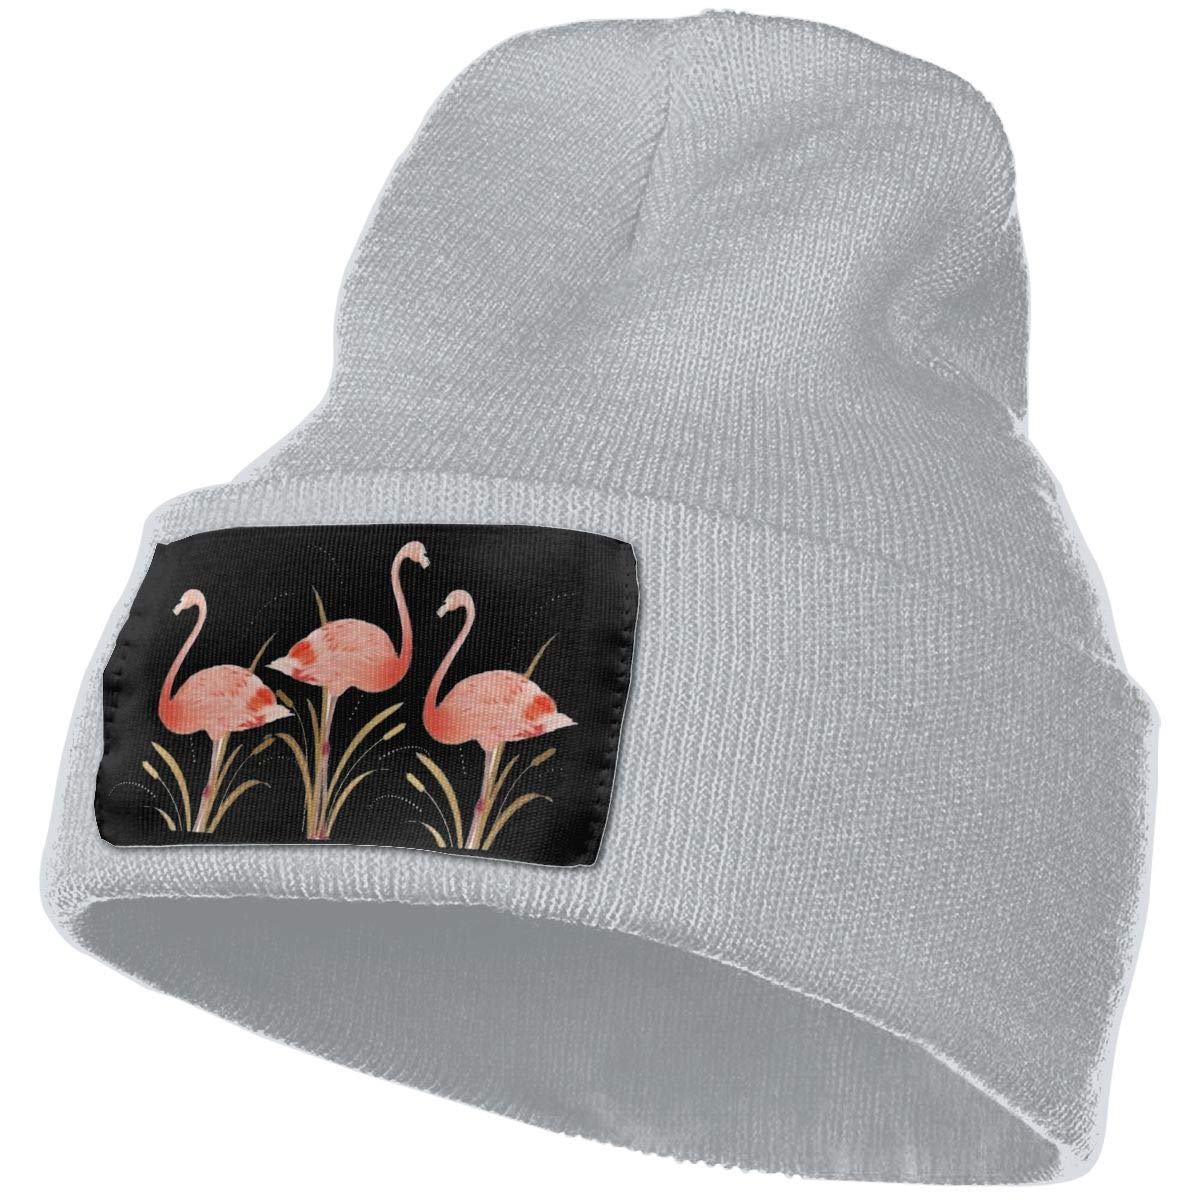 Flamingos Warm Winter Hat Knit Beanie Skull Cap Cuff Beanie Hat Winter Hats for Men /& Women